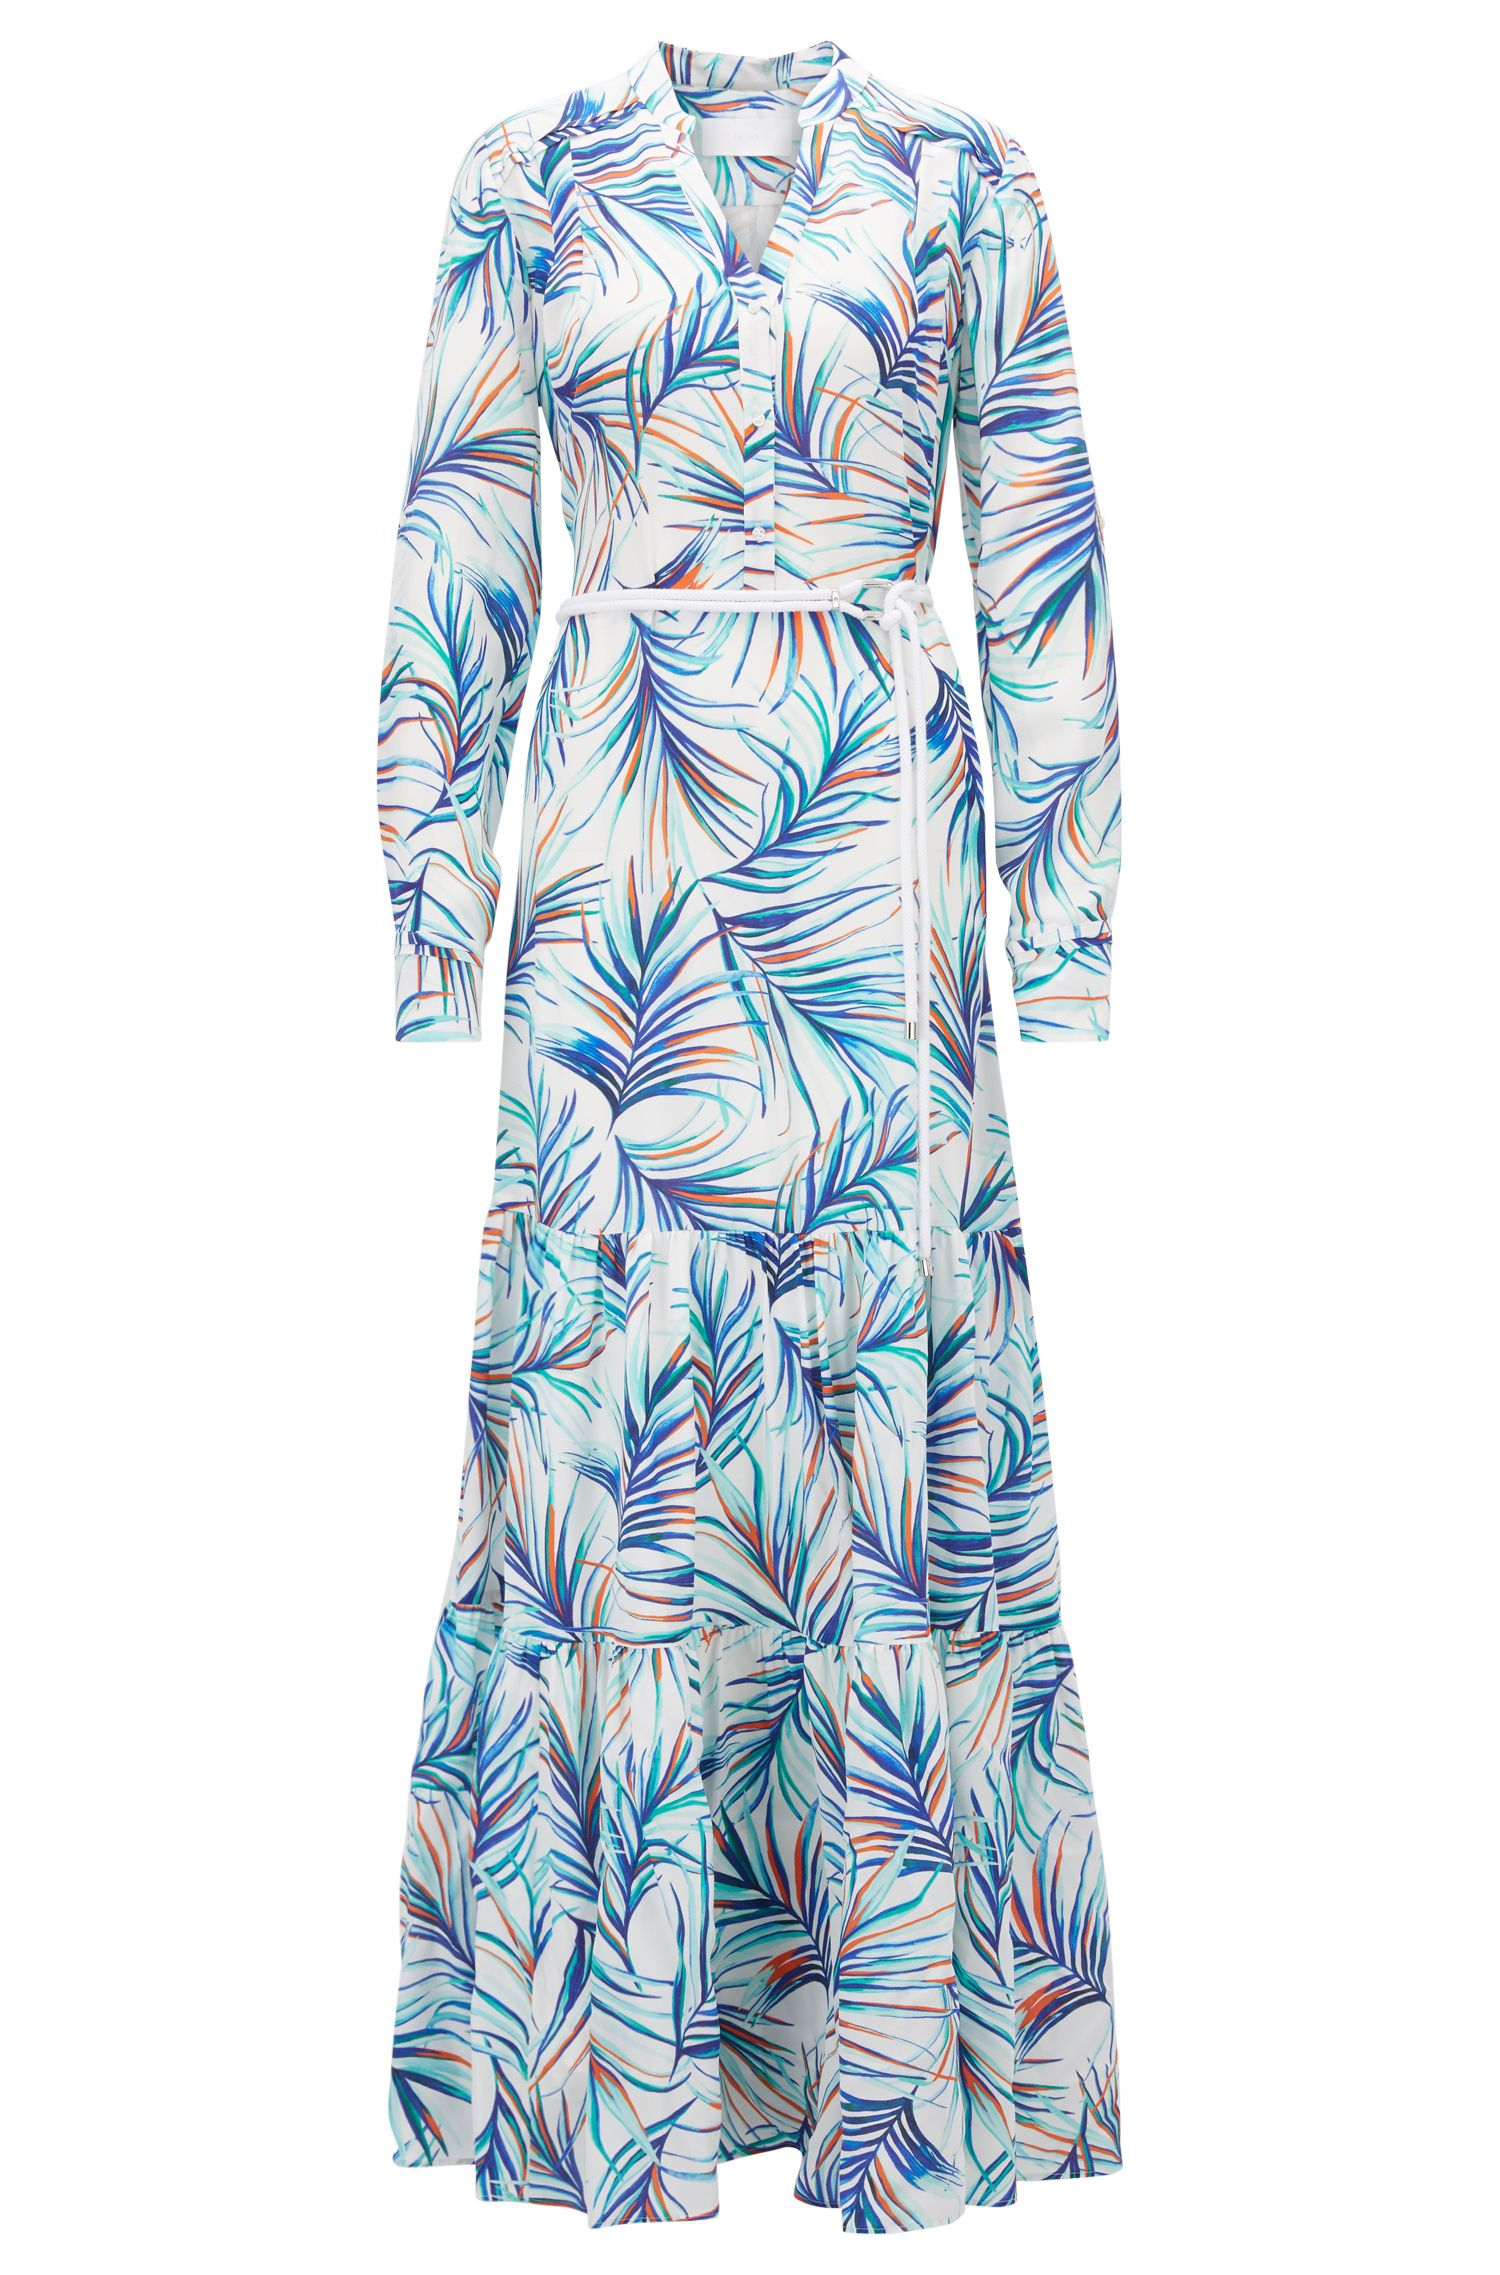 Long-sleeved silk maxi dress in palm-leaf print